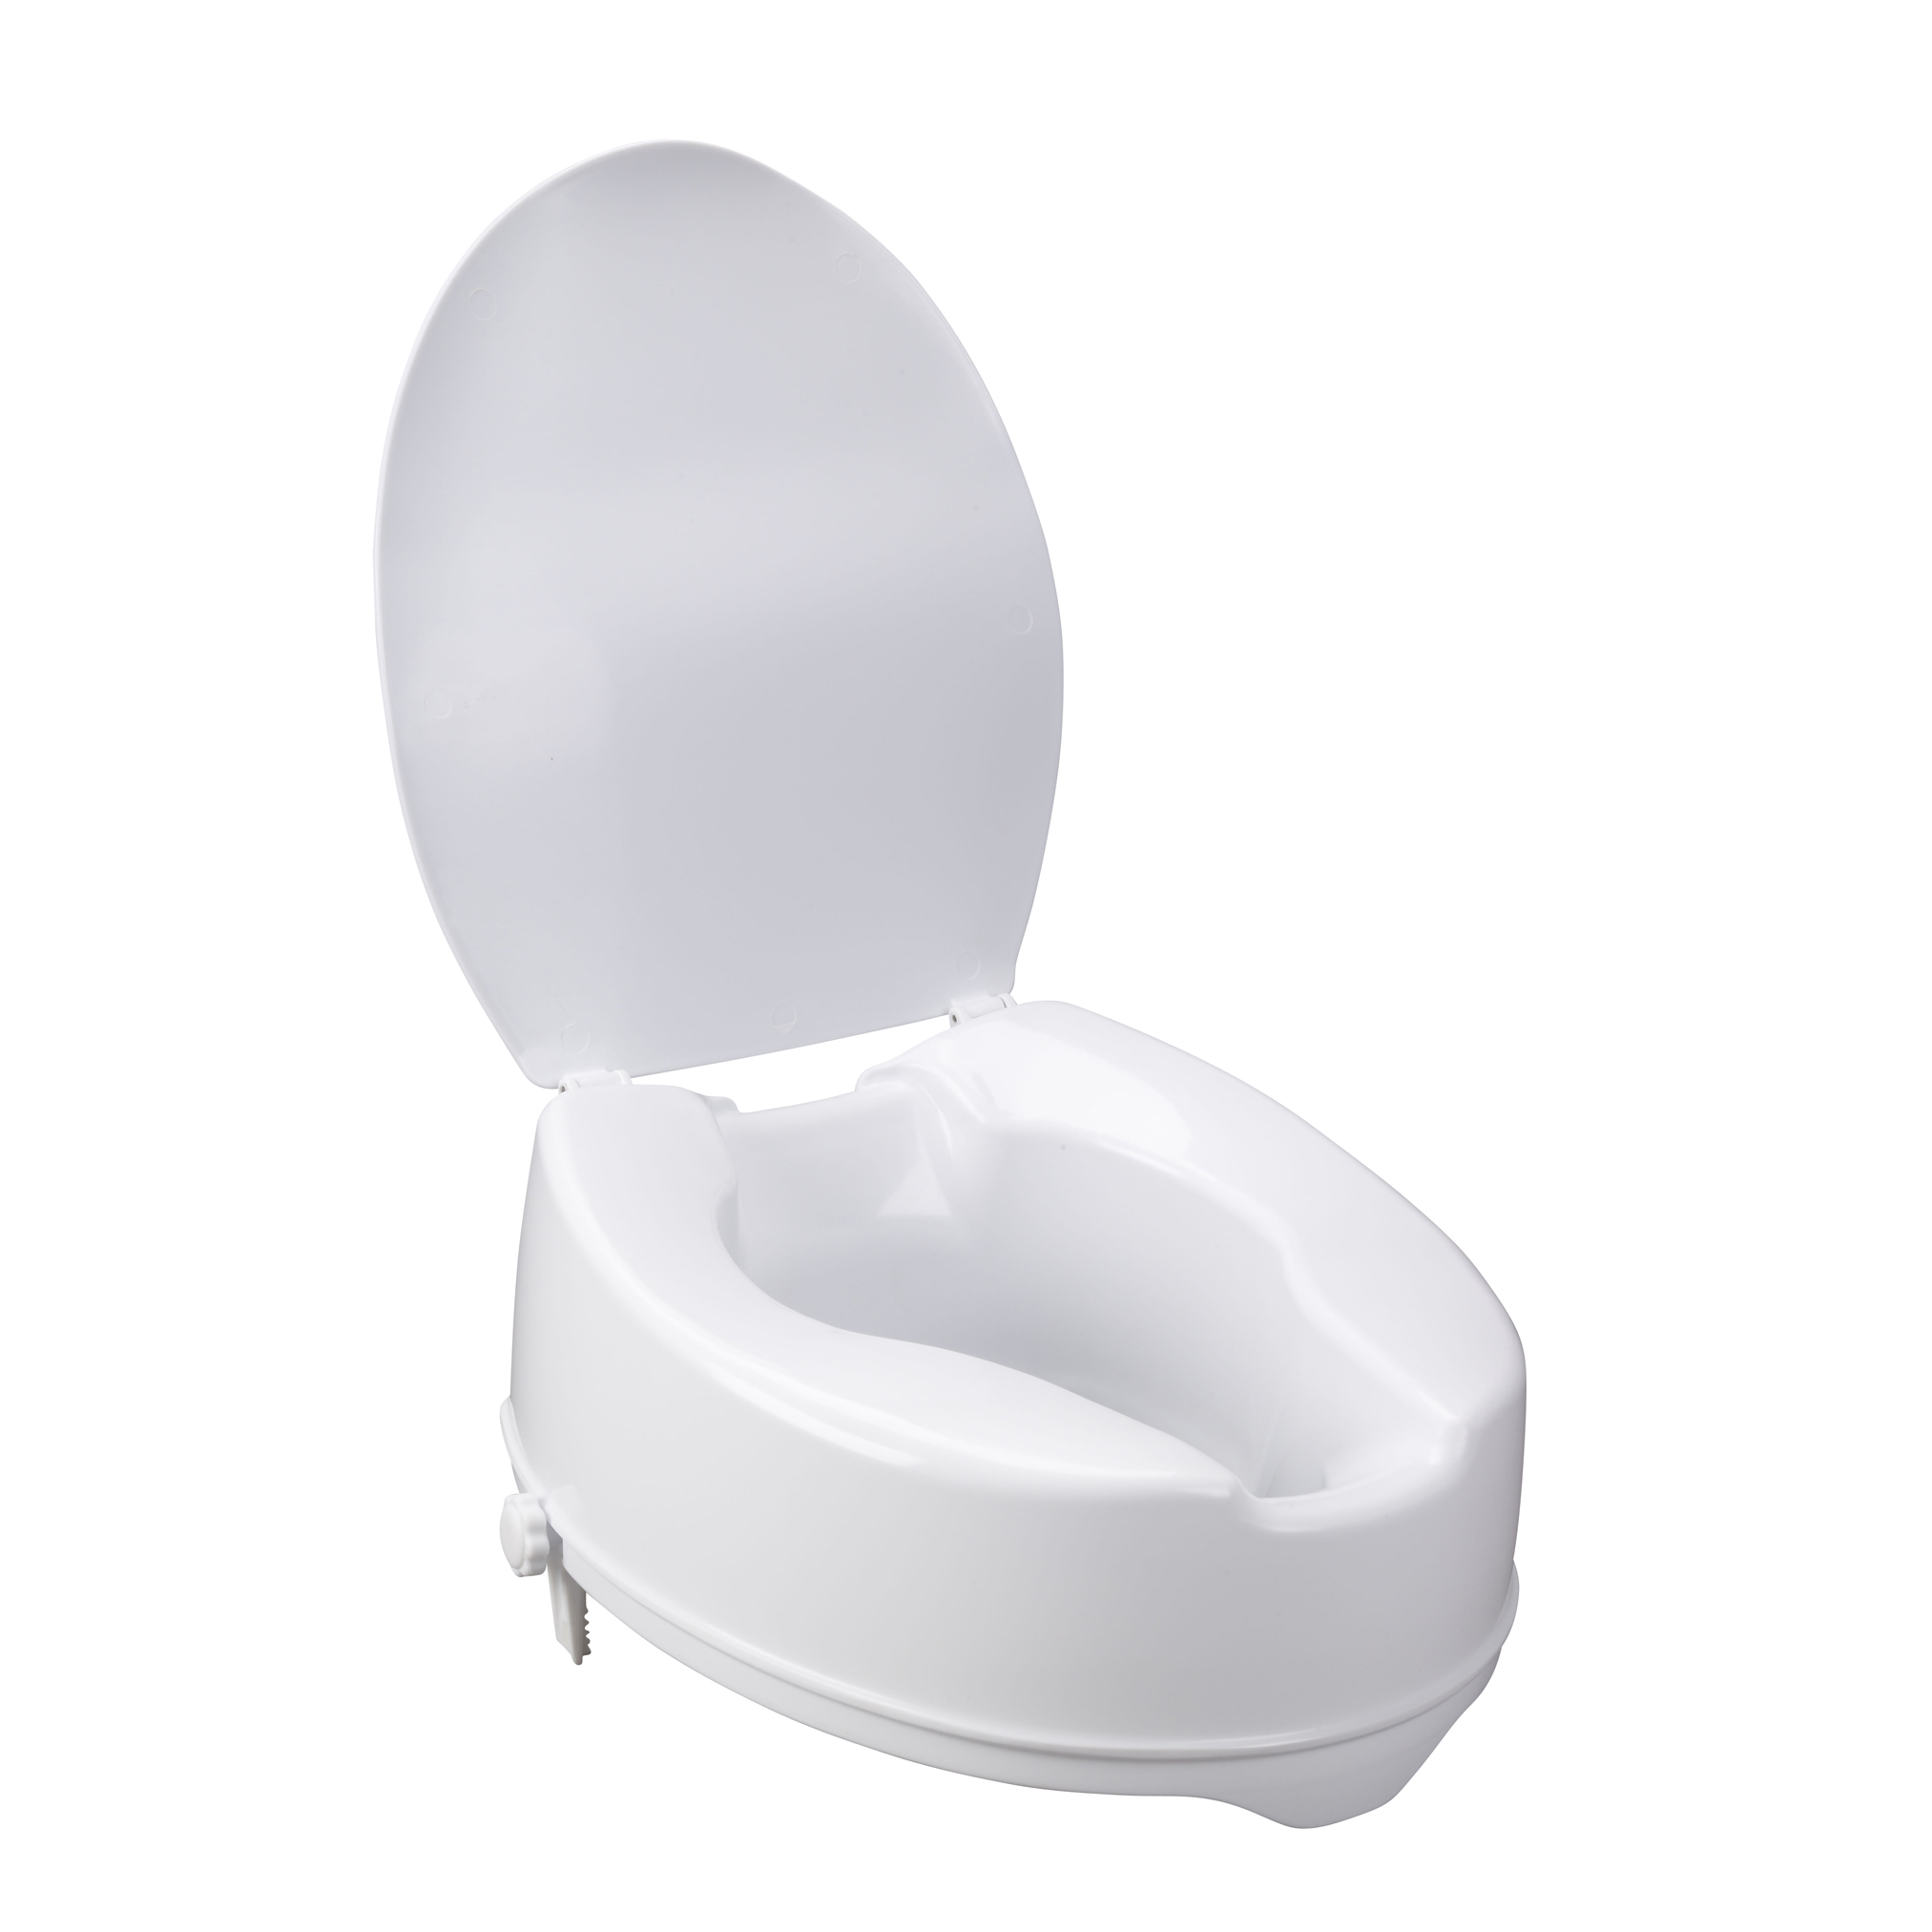 Astounding Raised Toilet Seat With Lock And Lid Standard Seat 6 Cjindustries Chair Design For Home Cjindustriesco